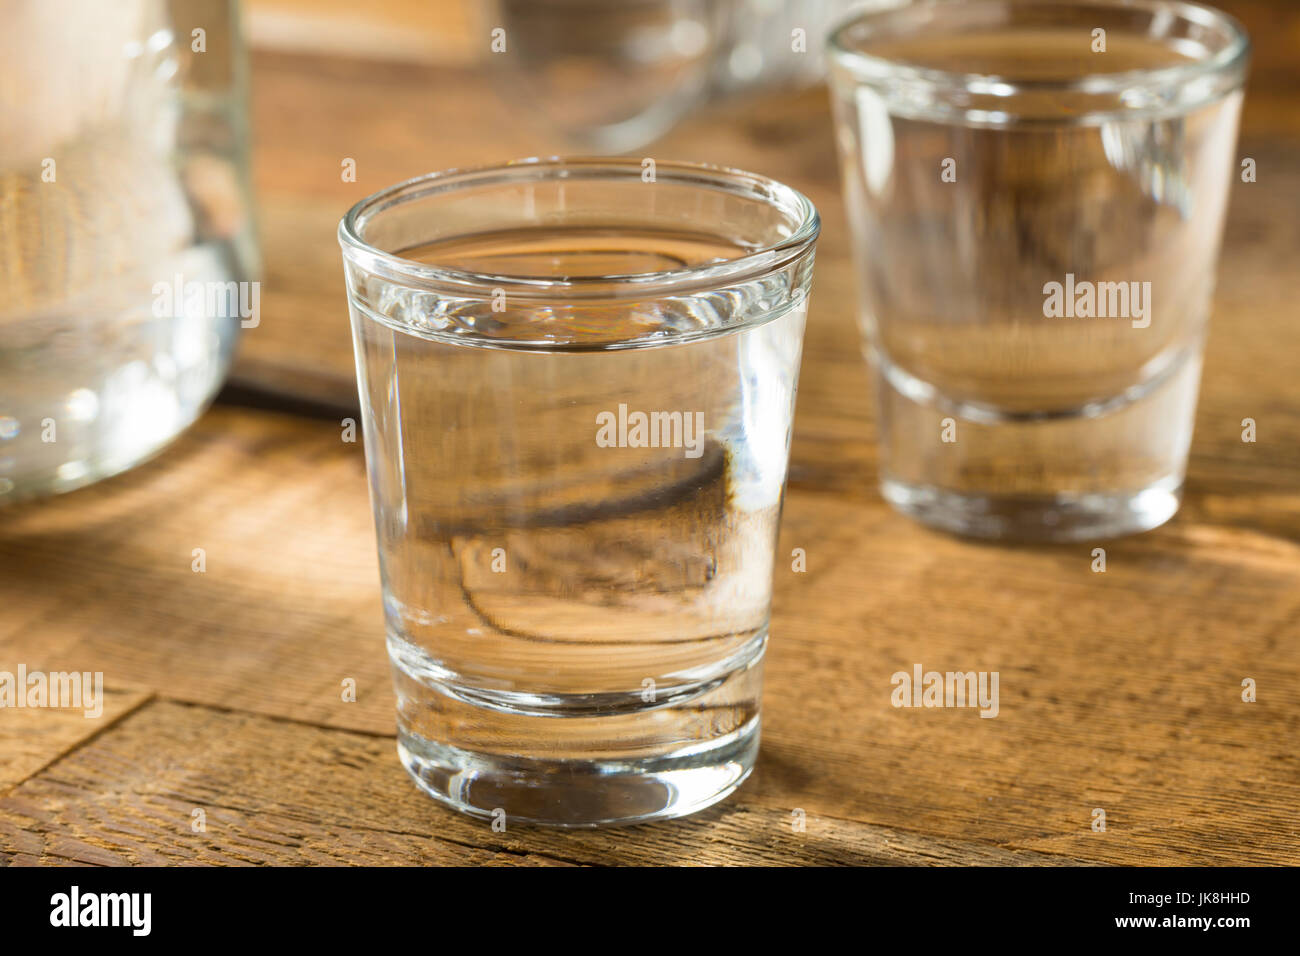 Boozy Alcoholic American Moonshine Shots Ready to Drink - Stock Image